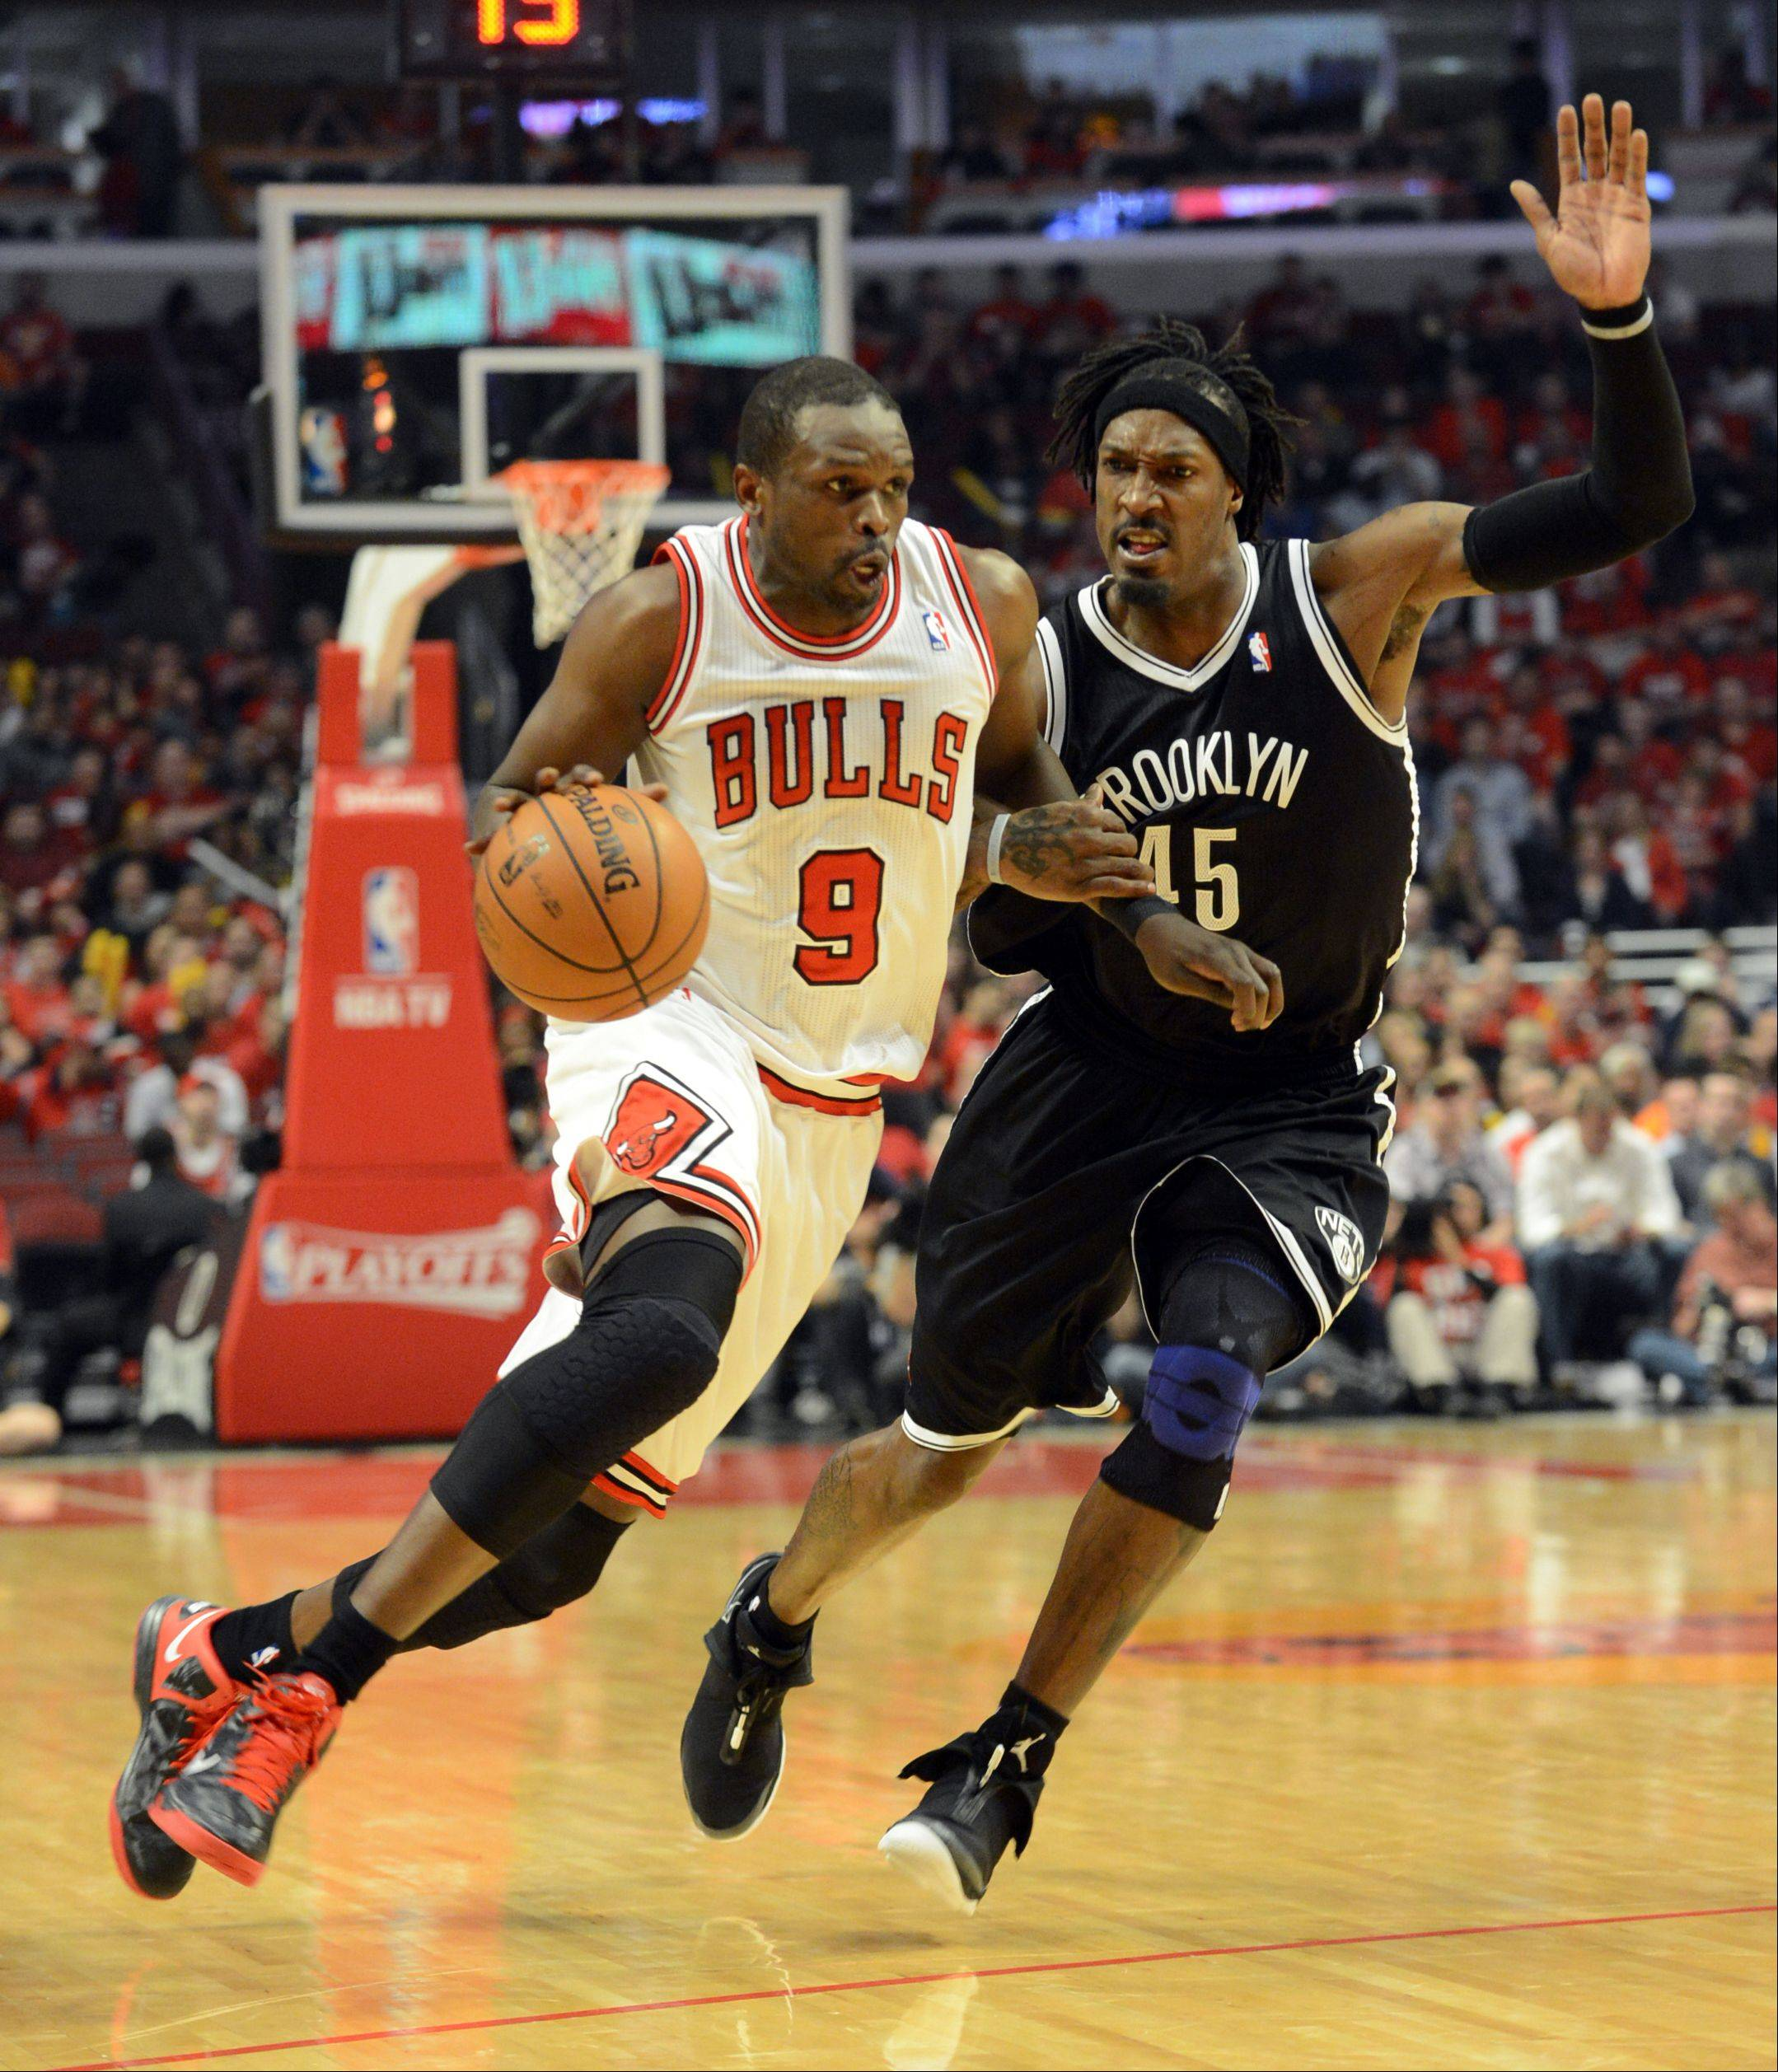 The Bulls Luol Deng drives past Brooklyn's Gerald Wallace during the second quarter of Game 4. Deng has been ruled out for tonight's game.